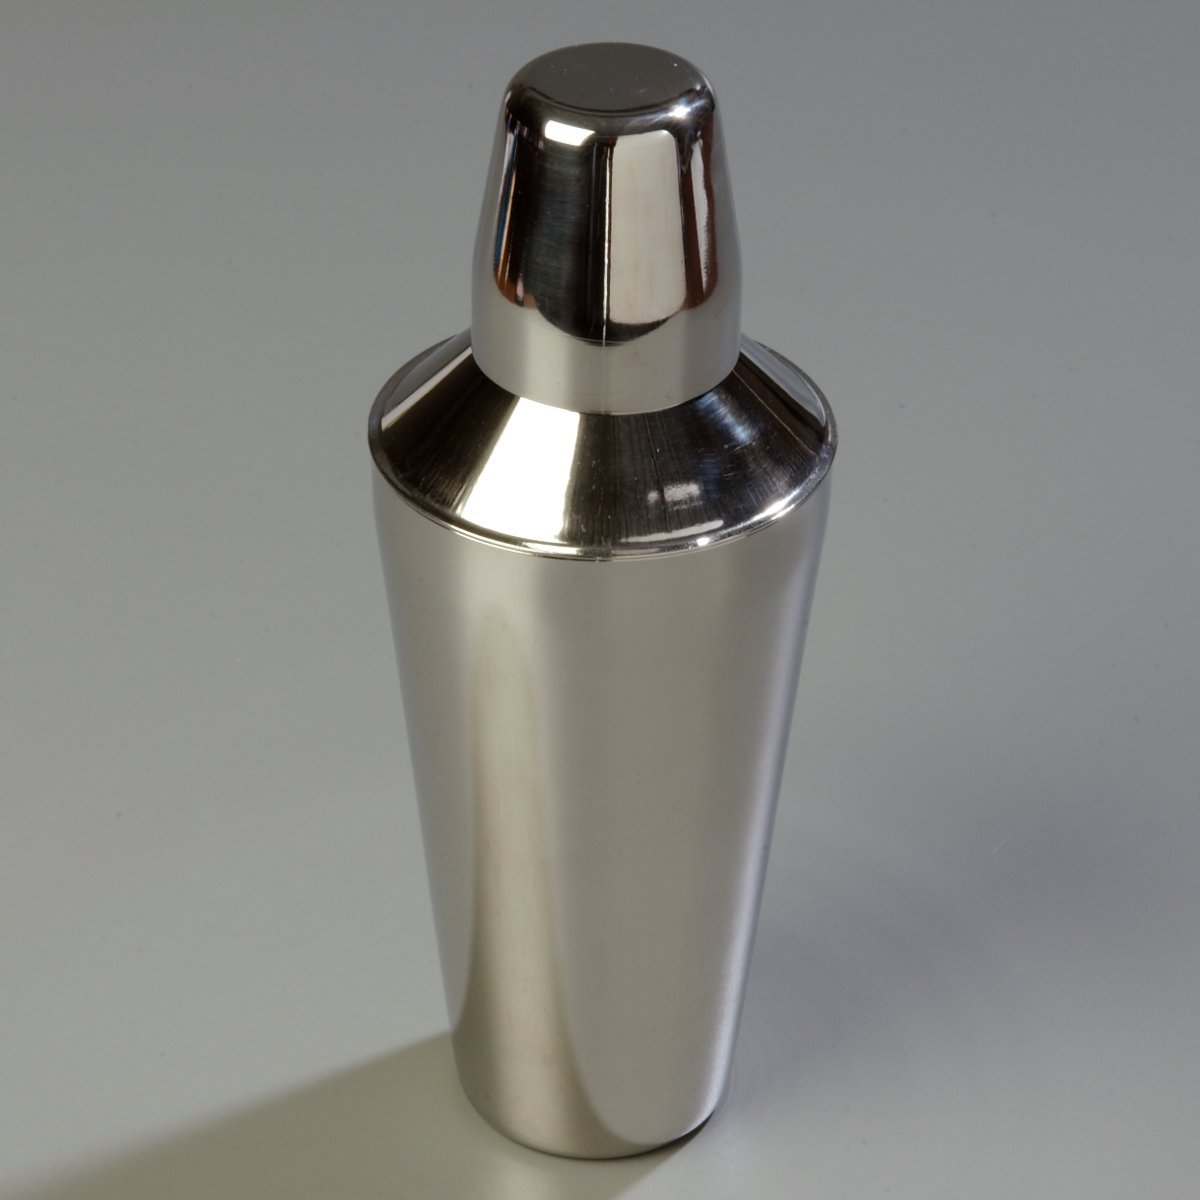 Carlisle 608600 Bar Essential Stainless Steel 18-8 Classic Cocktail Shaker, 30 oz. Capacity, 3-3/4 x 9-3/4'' (Case of 12) by Carlisle (Image #7)